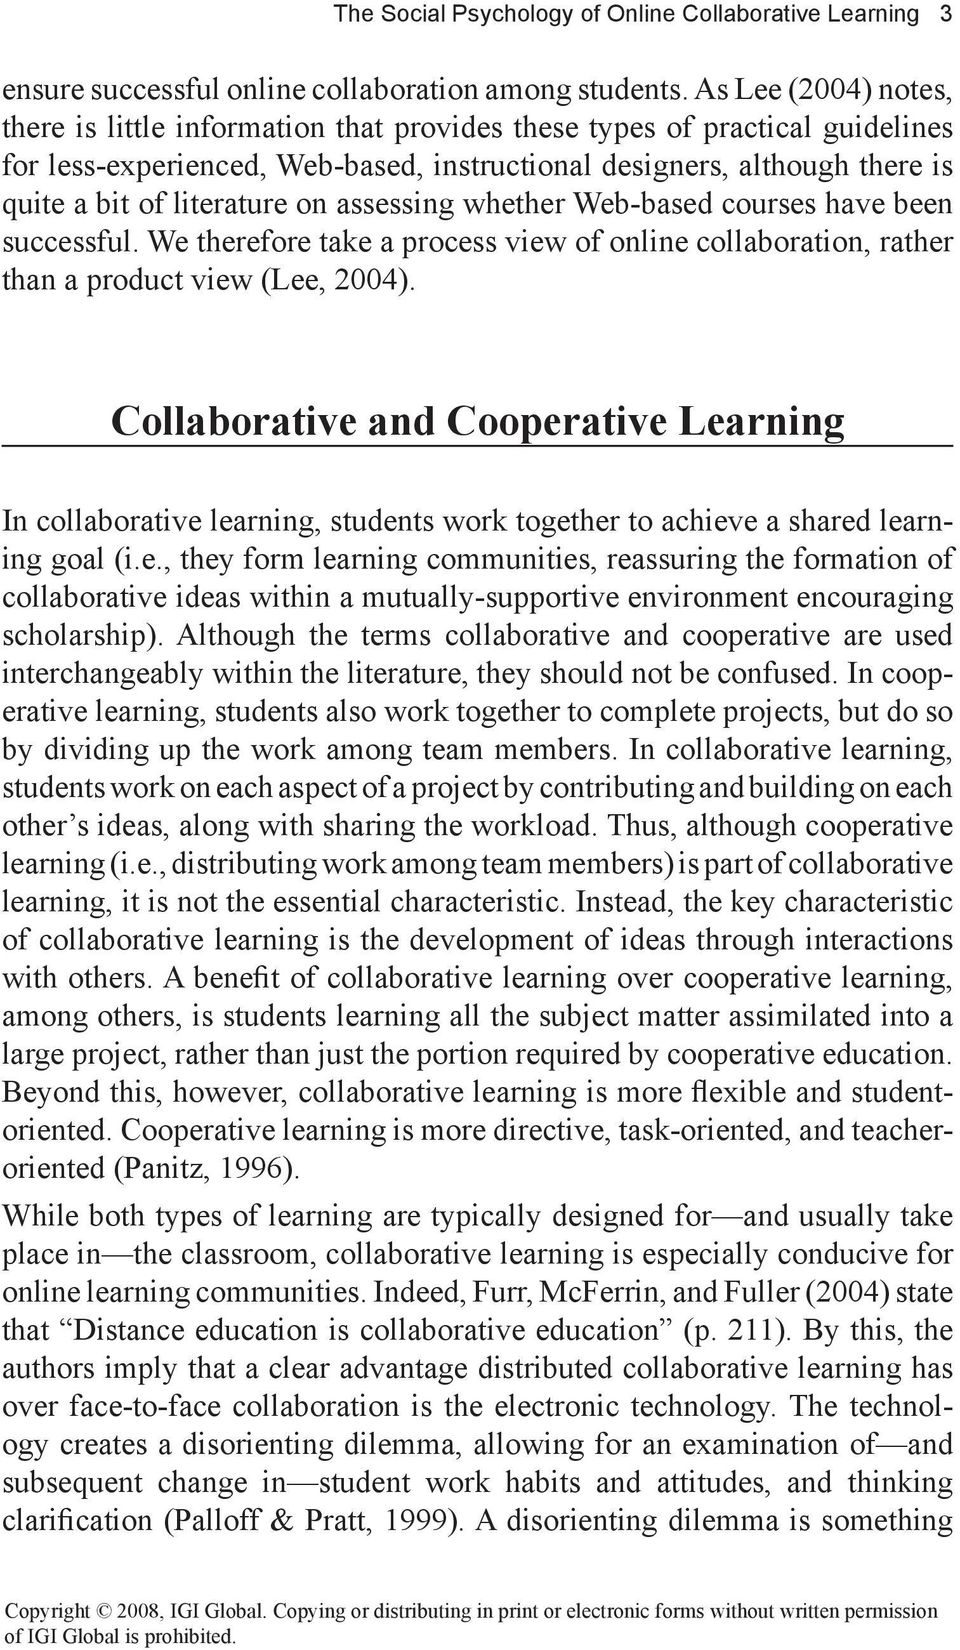 literature on assessing whether Web-based courses have been successful. We therefore take a process view of online collaboration, rather than a product view (Lee, 2004).